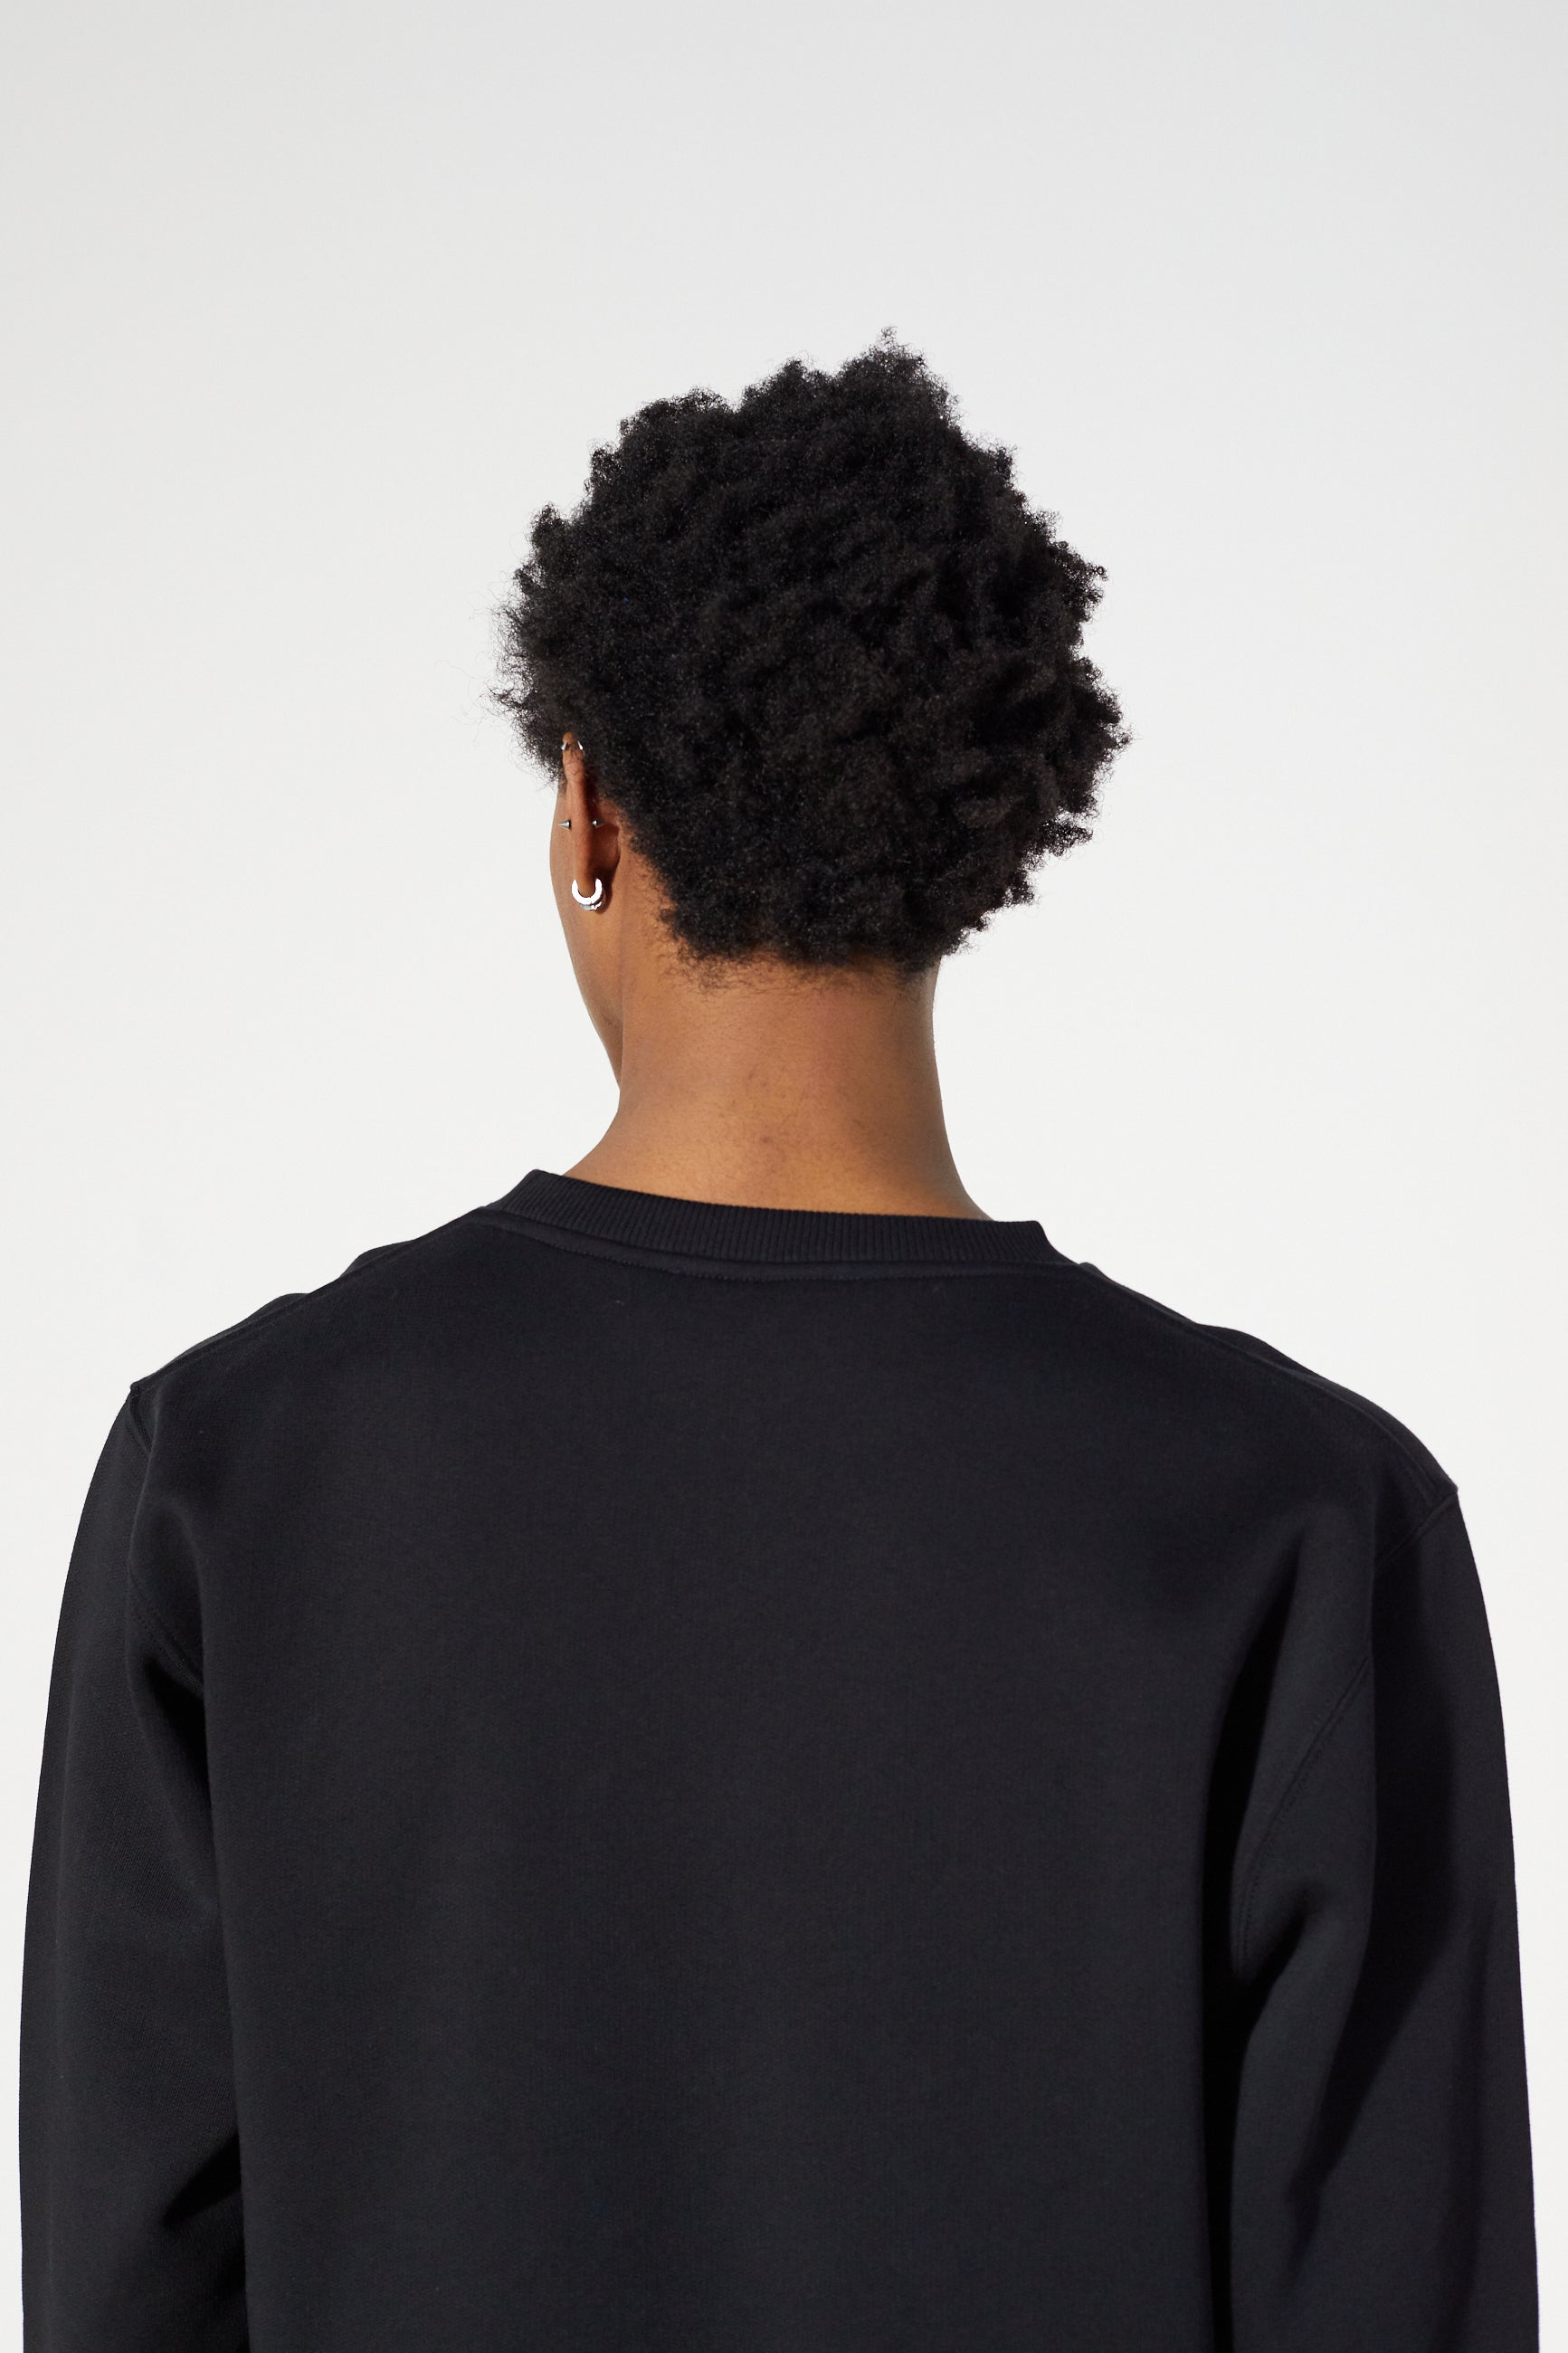 Études Story Patch Black Sweatshirt 5